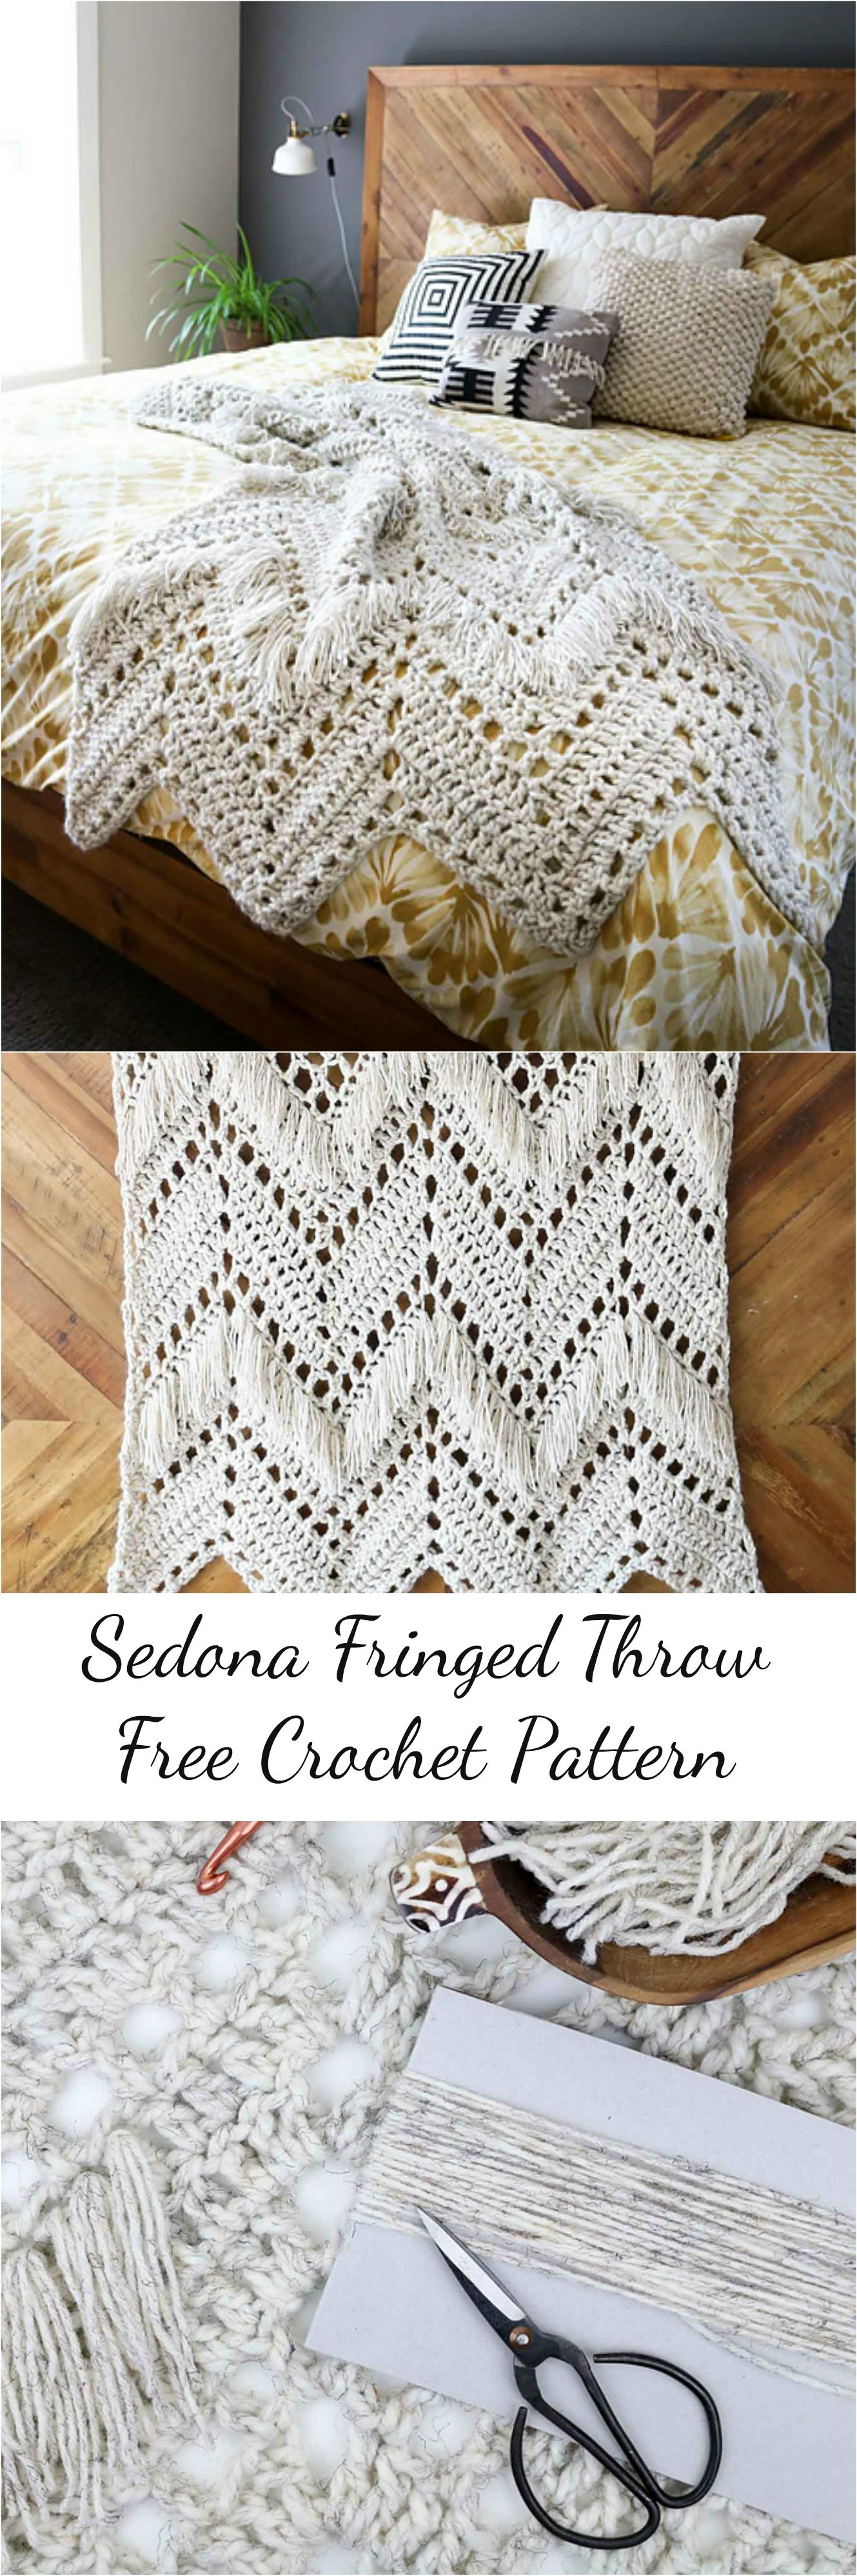 Sedona Fringed Crochet Throw | Manta, Patrones de mantas y Mantas de ...